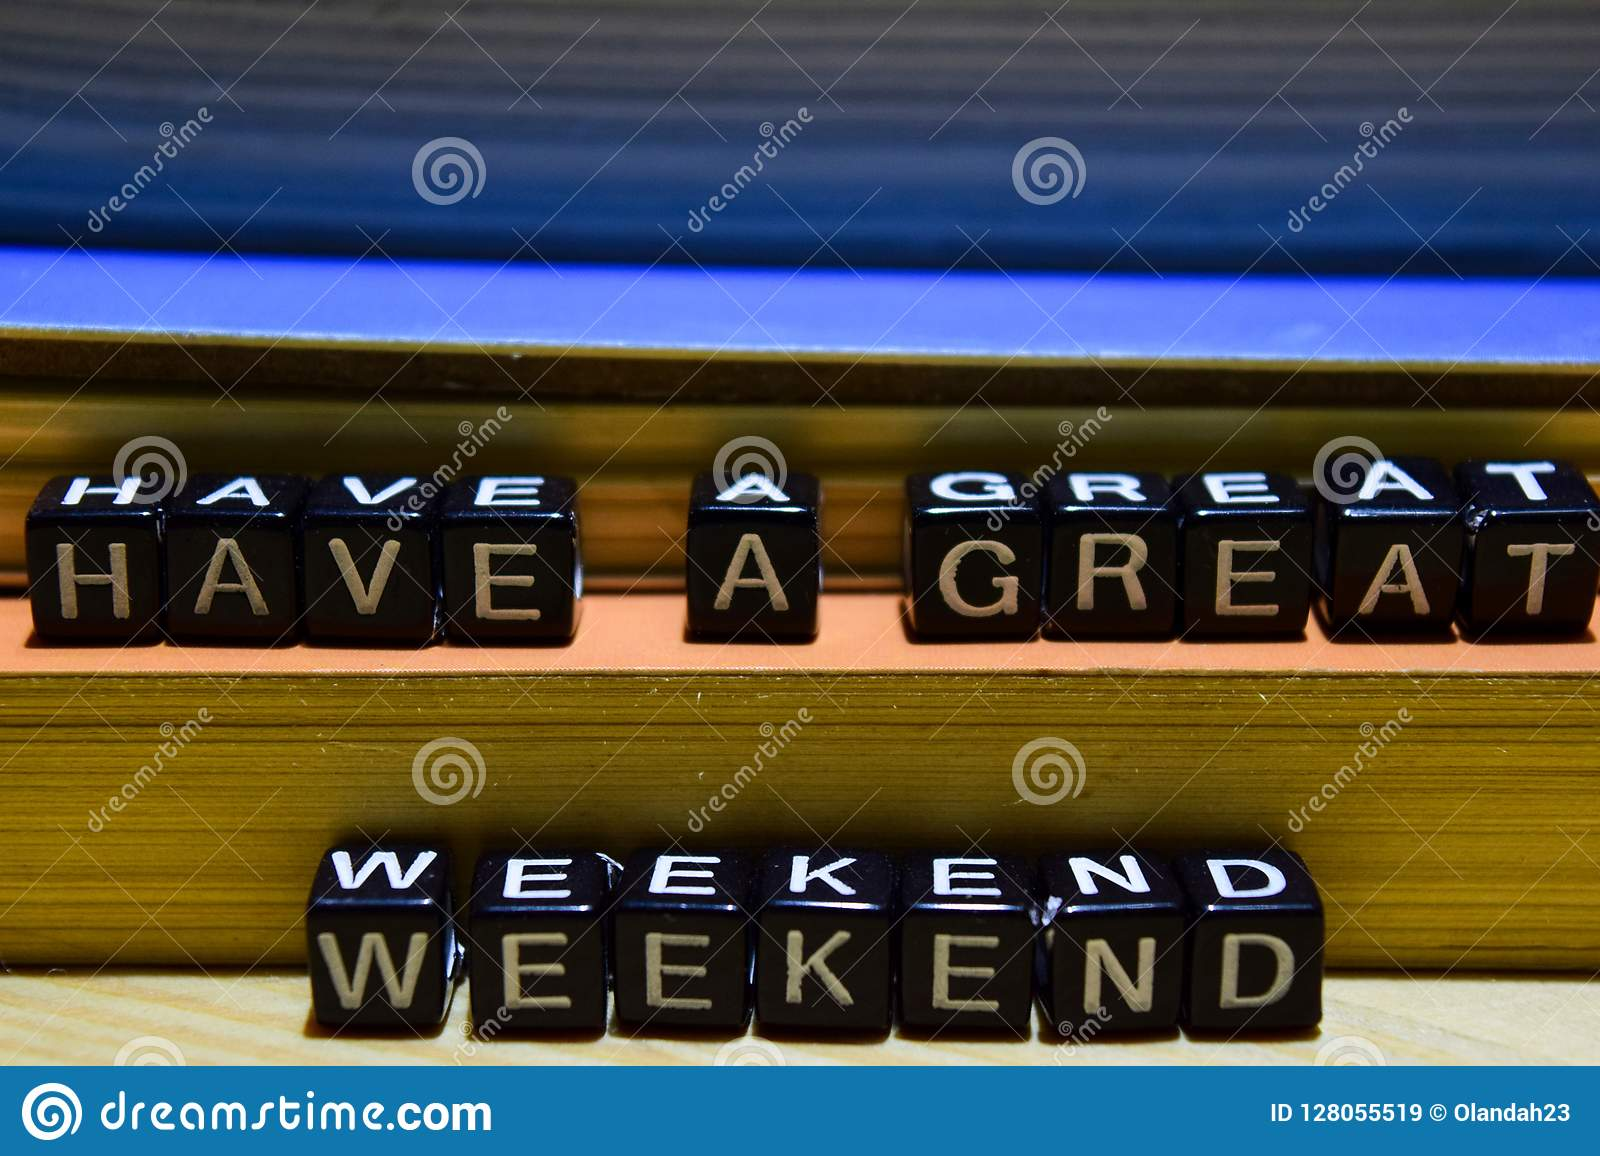 Have a great weekend on wooden blocks. Education and business concept